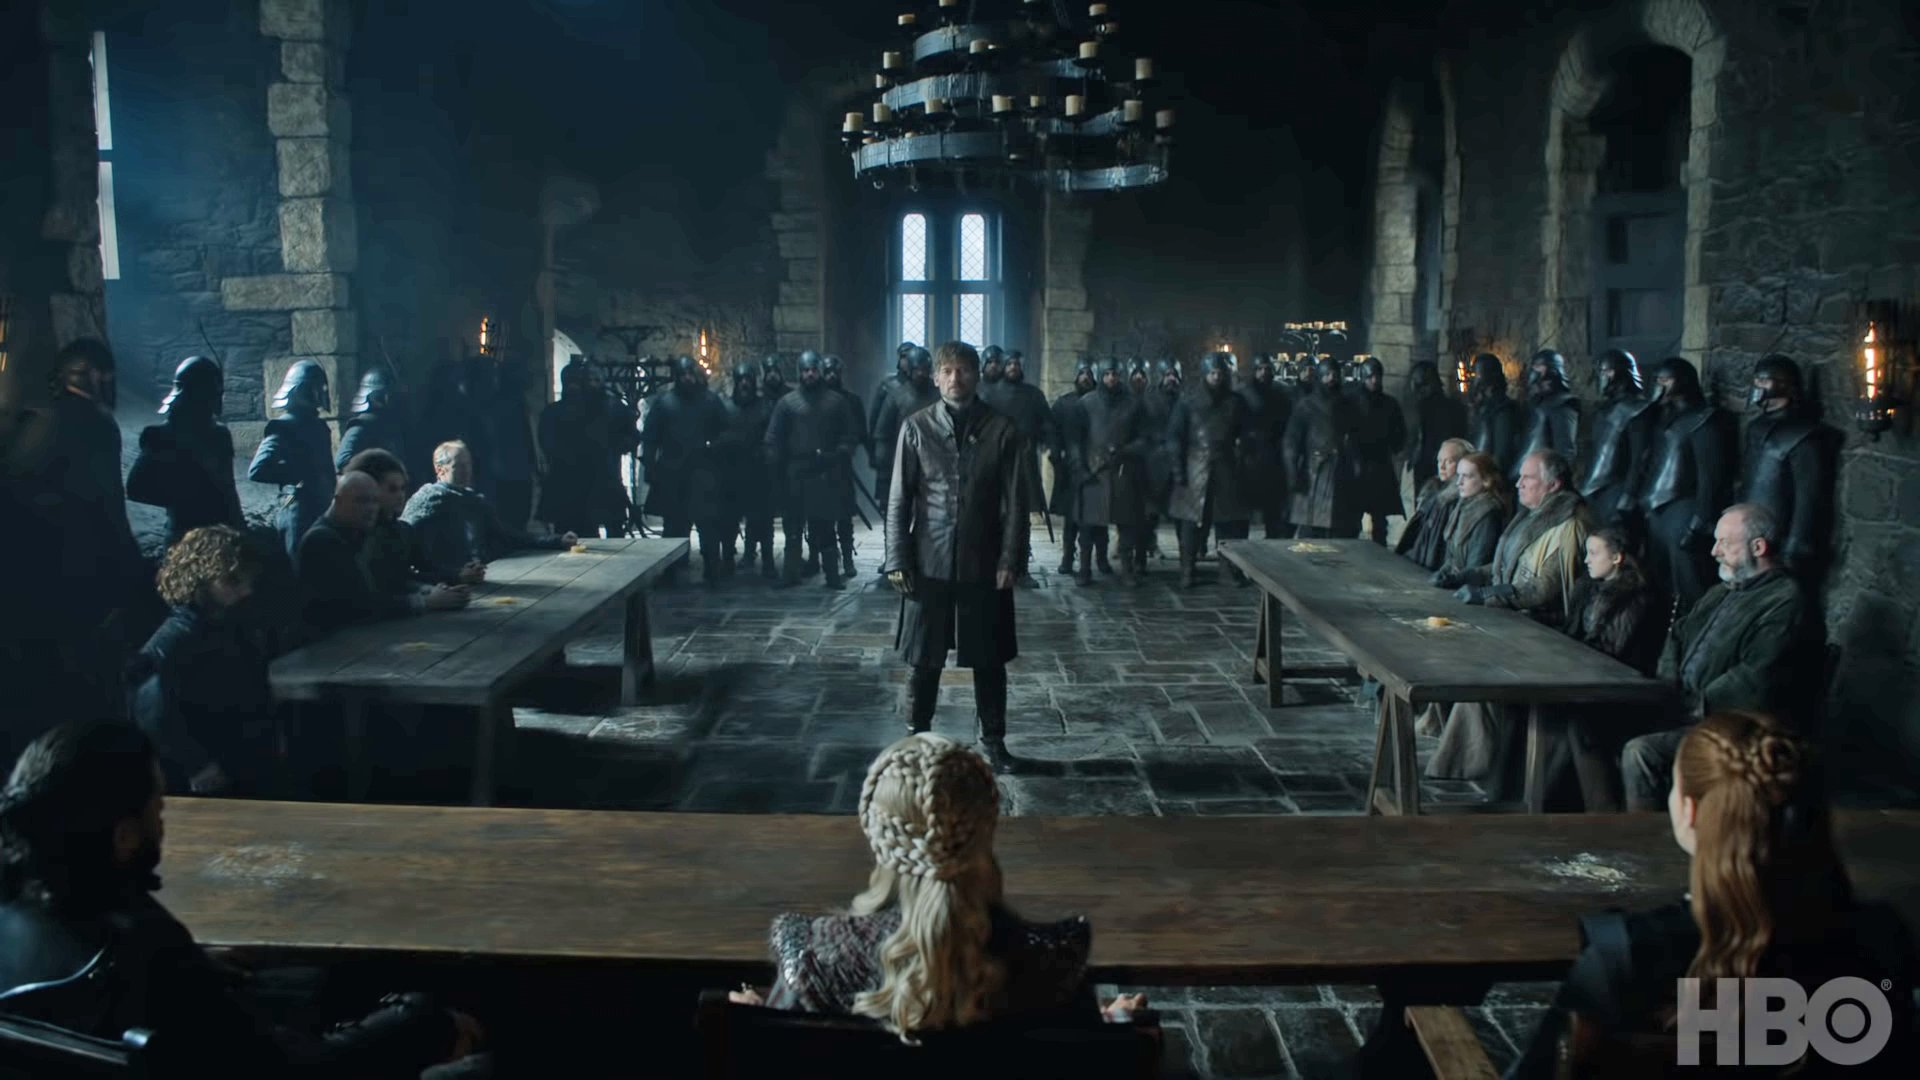 Game of Thrones Season 8 Episode 2 Preview trailer (Picture: HBO)